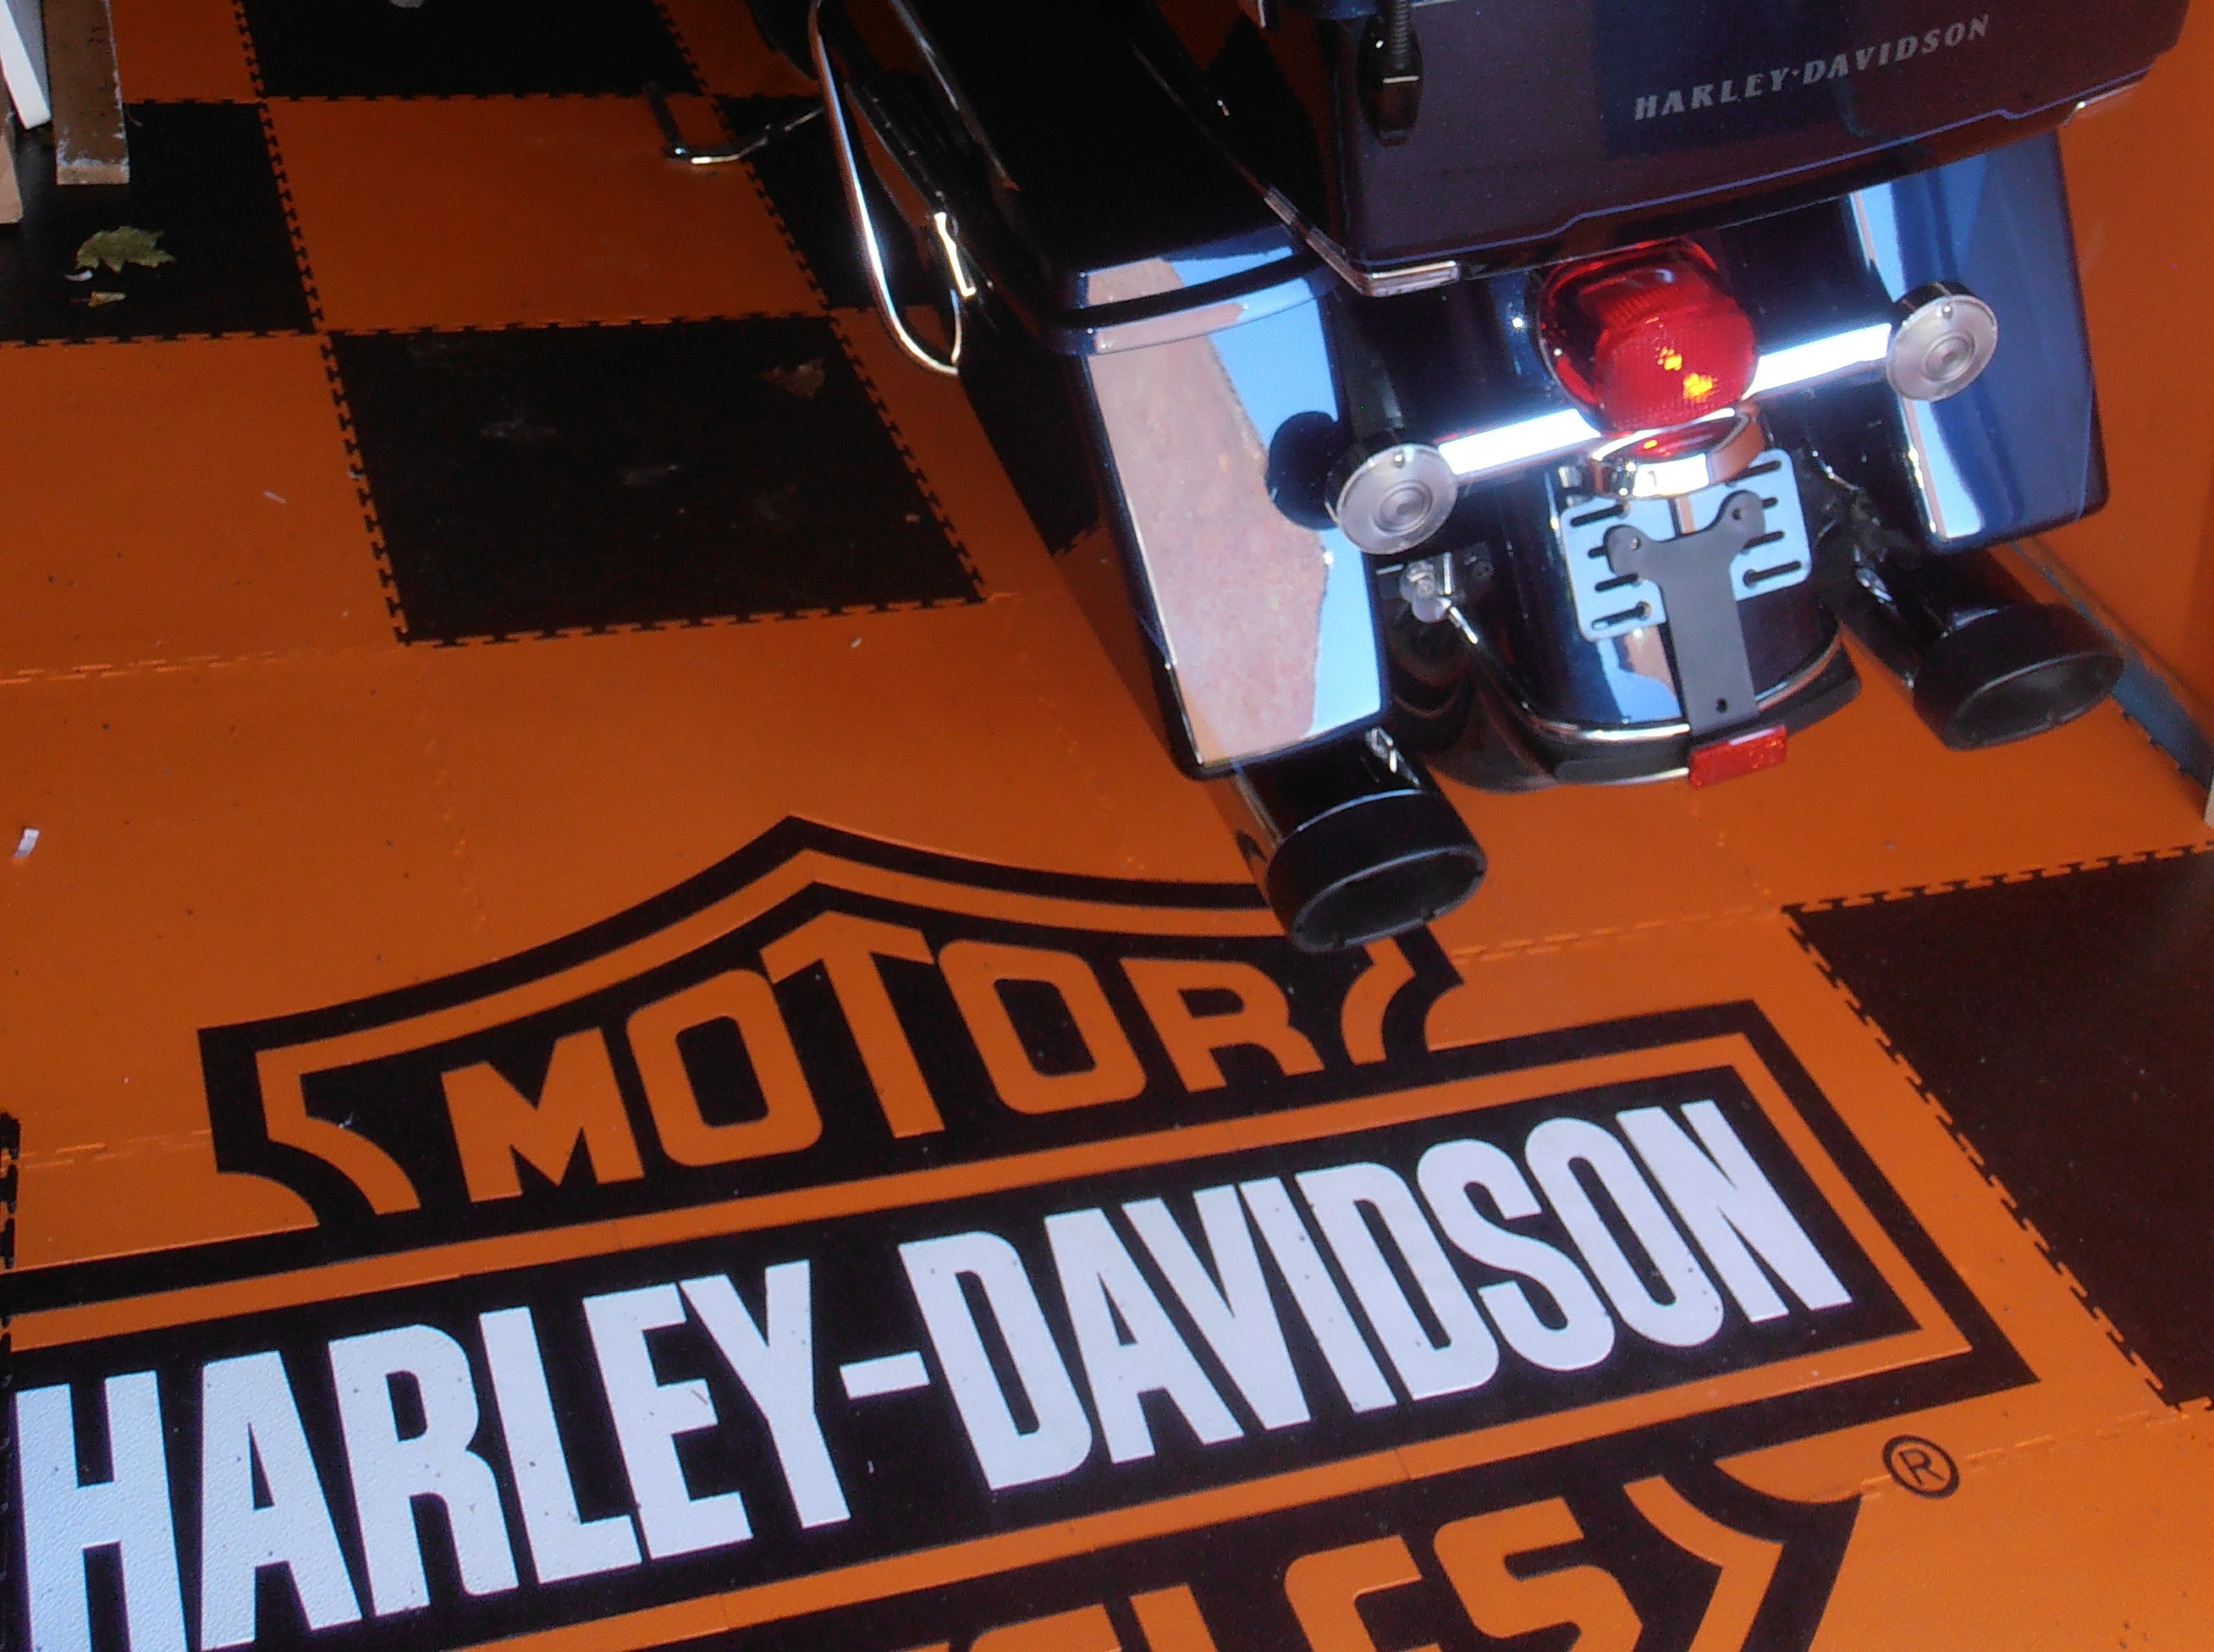 Special order - orange tiles and Harley Davidson logo. We can print any logo given a suitable image or design